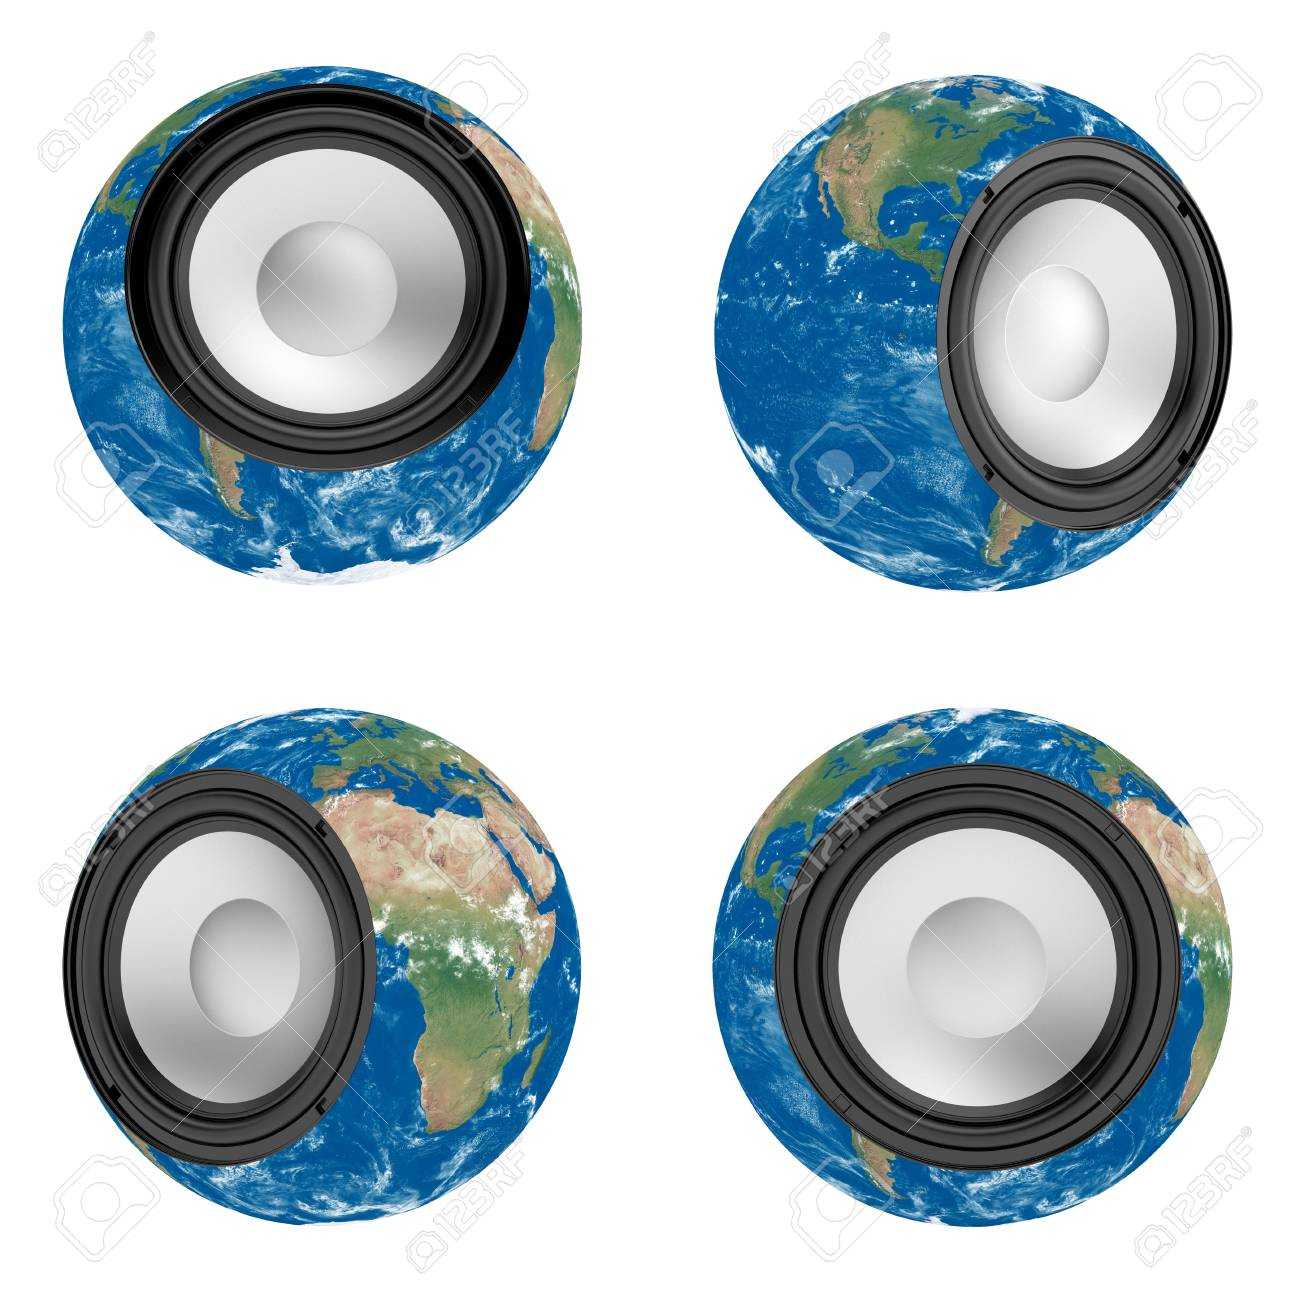 3d render of Earth with mounted musical speake Stock Photo - 8158074